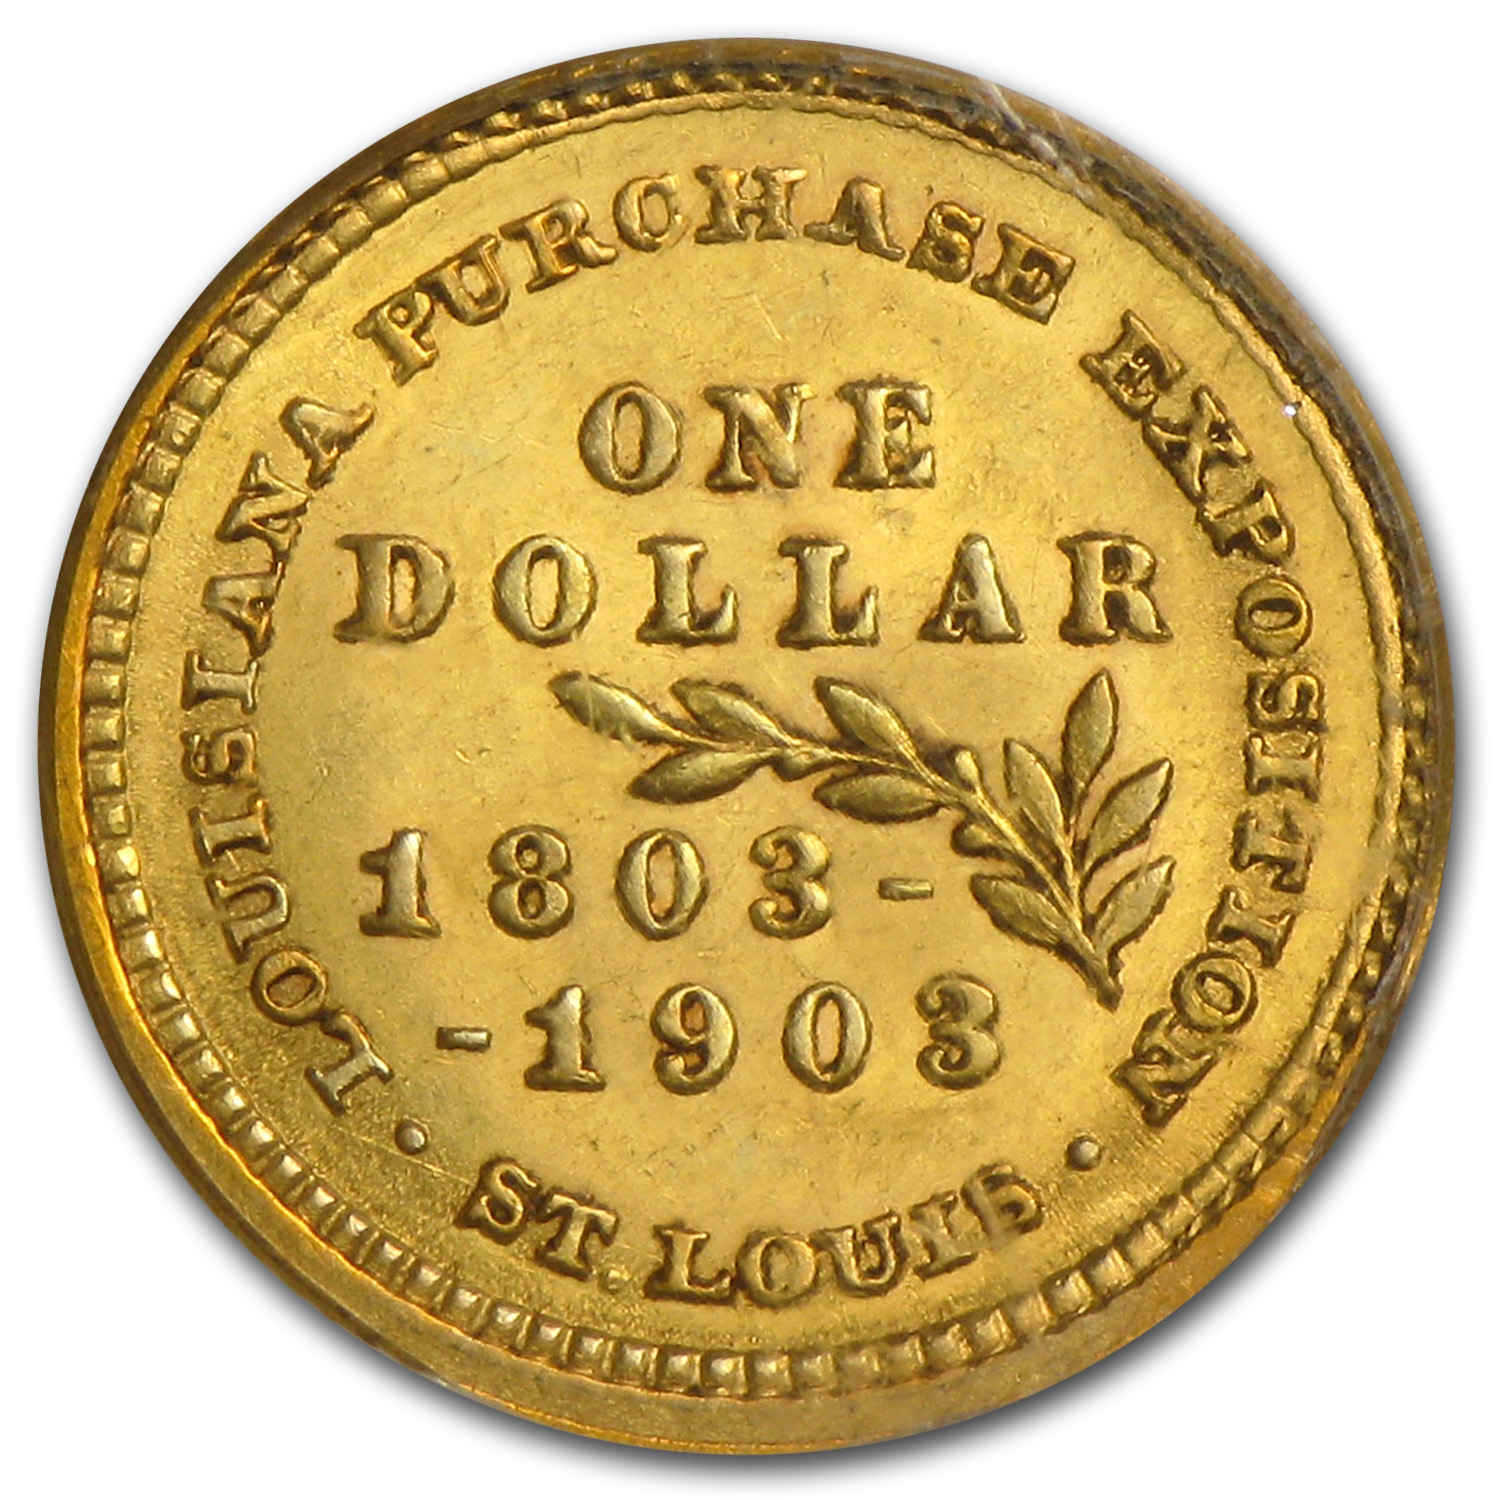 1903 $1.00 Gold Louisiana Purchase Jefferson AU-55 PCGS